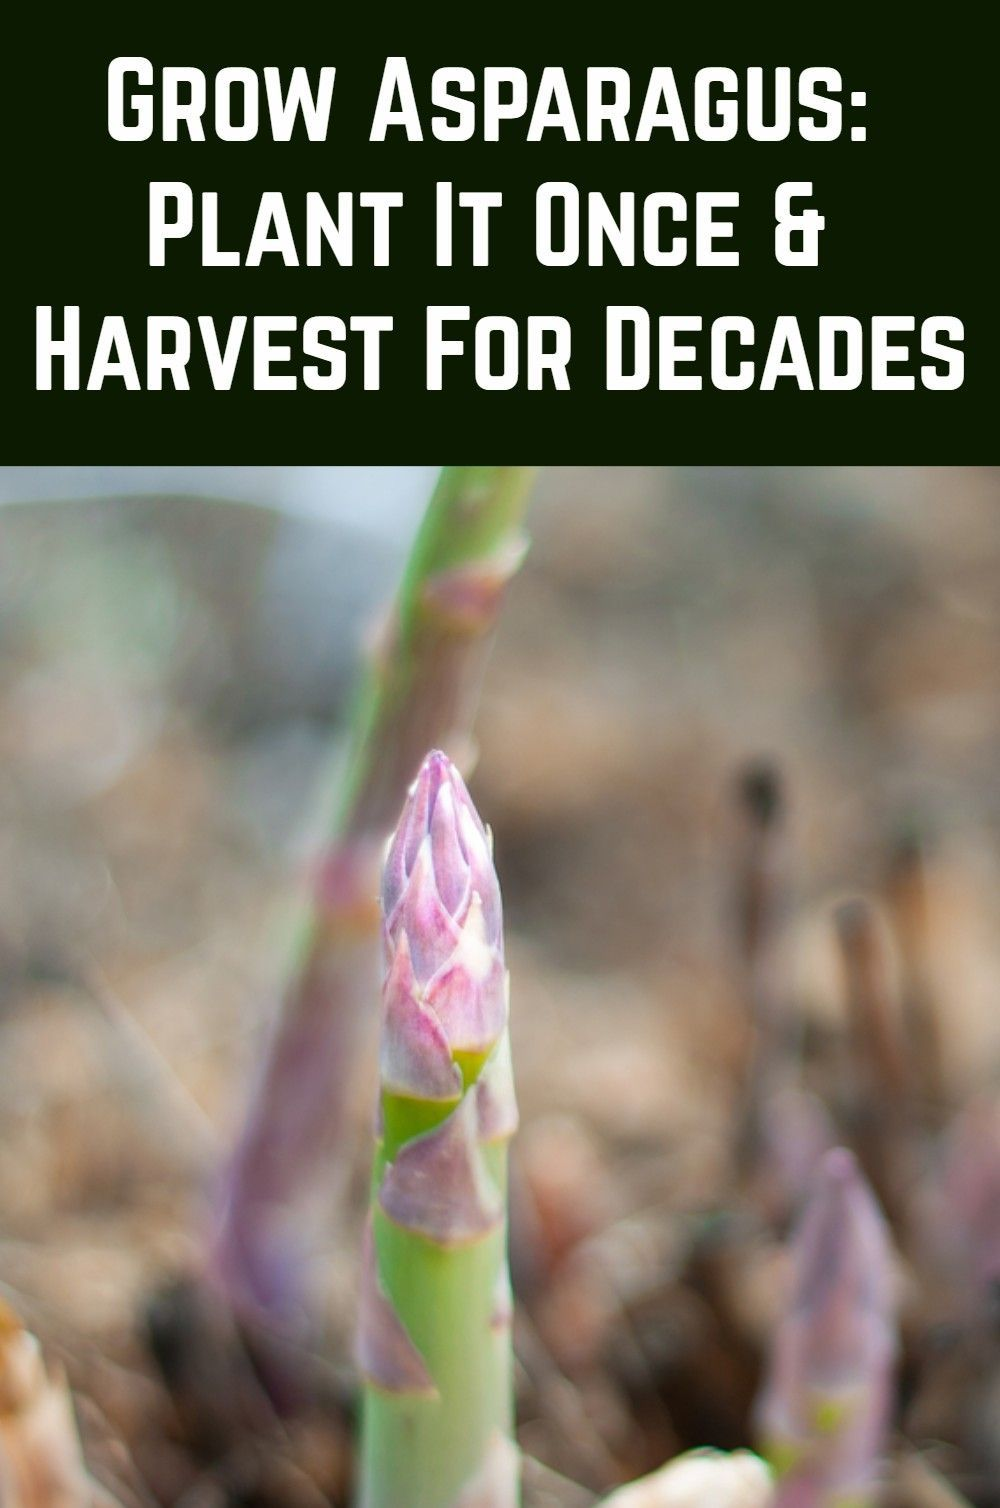 How To Grow Asparagus Plant It Once & Harvest For Decades is part of Growing asparagus, Plants, Veggie garden, Organic gardening tips, Easy garden, Planting flowers - Growing asparagus (Asparagus officinalis) requires patience but boy, is the payoff worth it  Although it takes up to three years to really get going, this perennial plant will produce a bountiful harvest year after year for up to 30 years